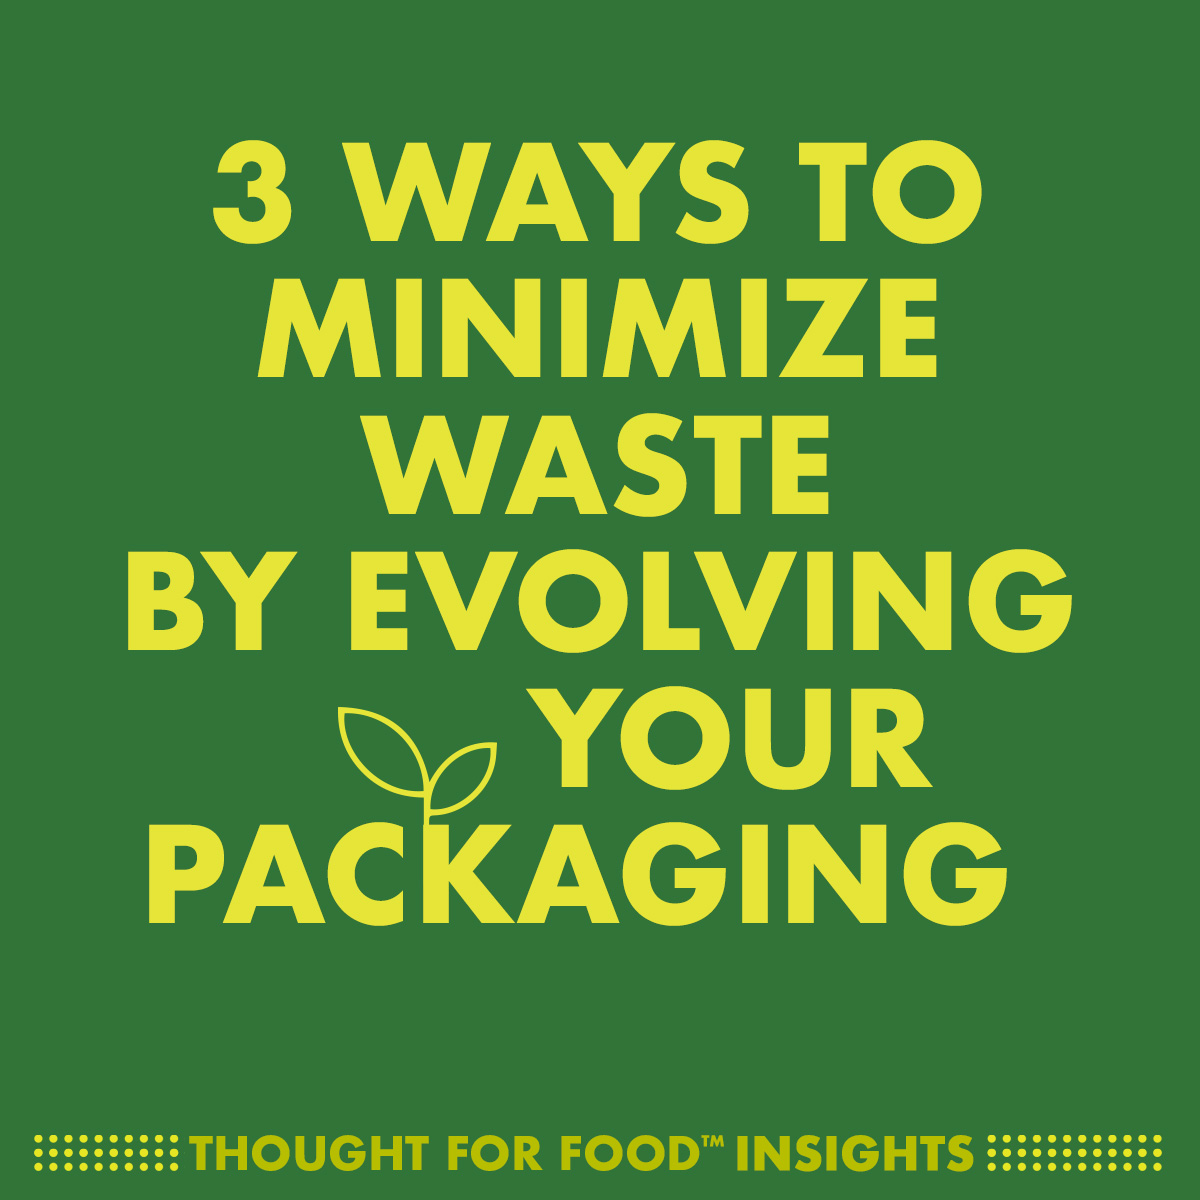 3 Ways to Minimize Waste by evolving your packaging